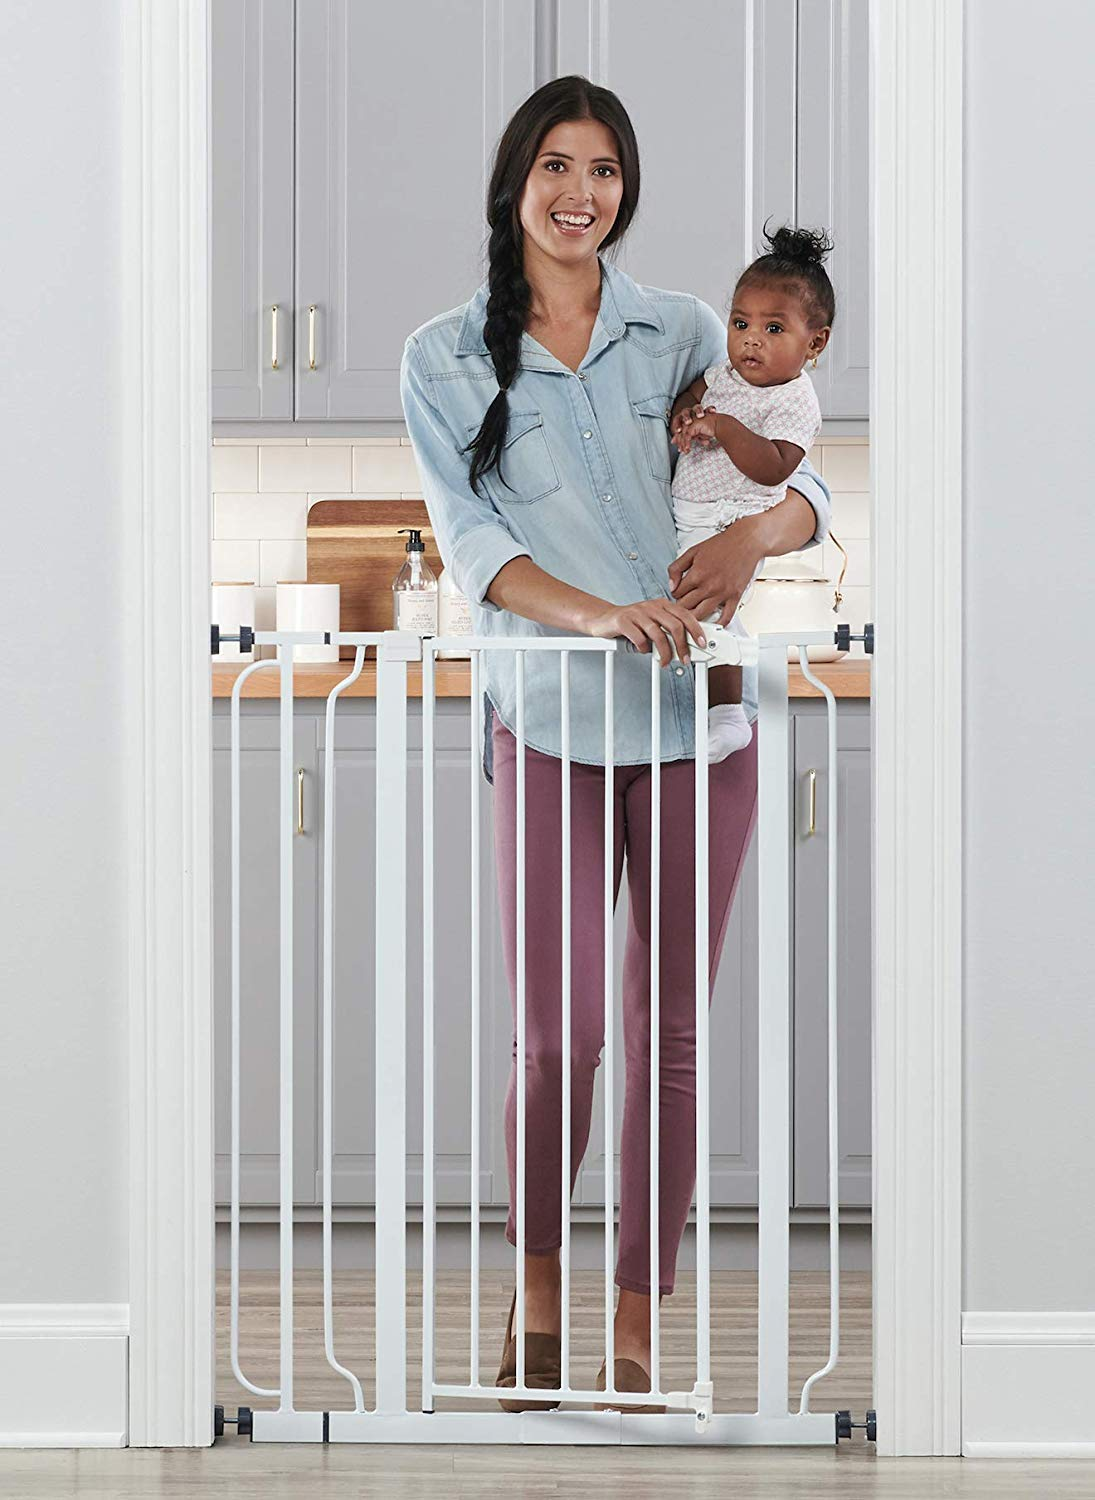 Tall Baby Gate with Walk-Through (Regalo) Image